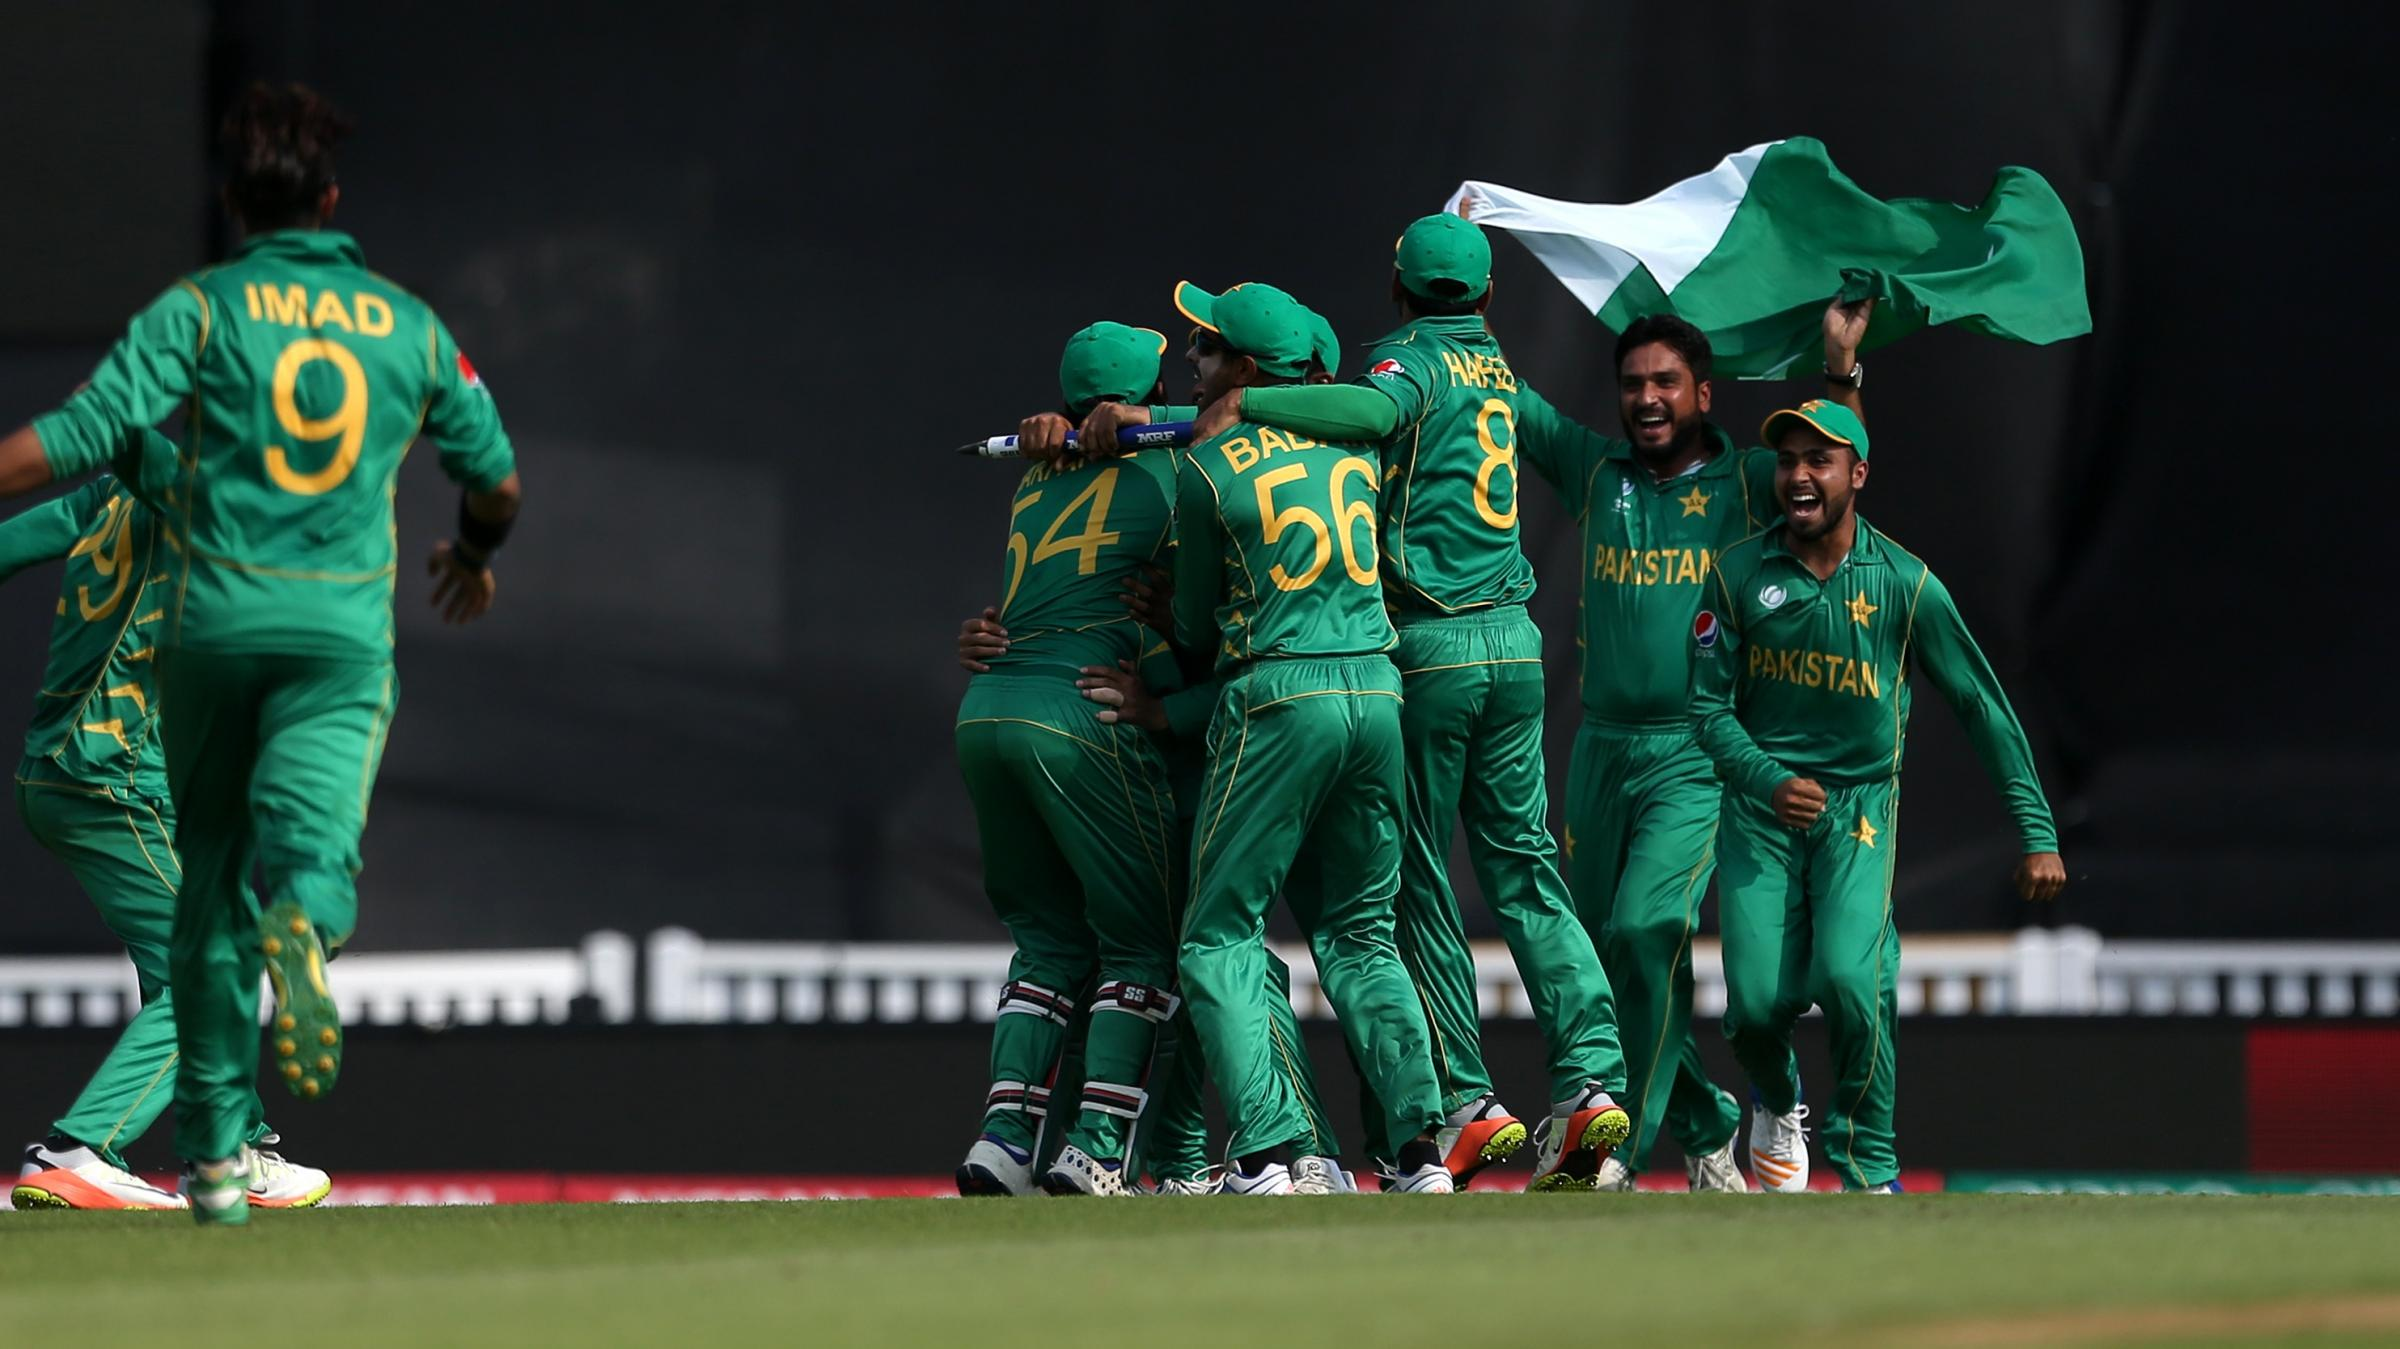 Pakistan smash 338 vs India in Champions Trophy final